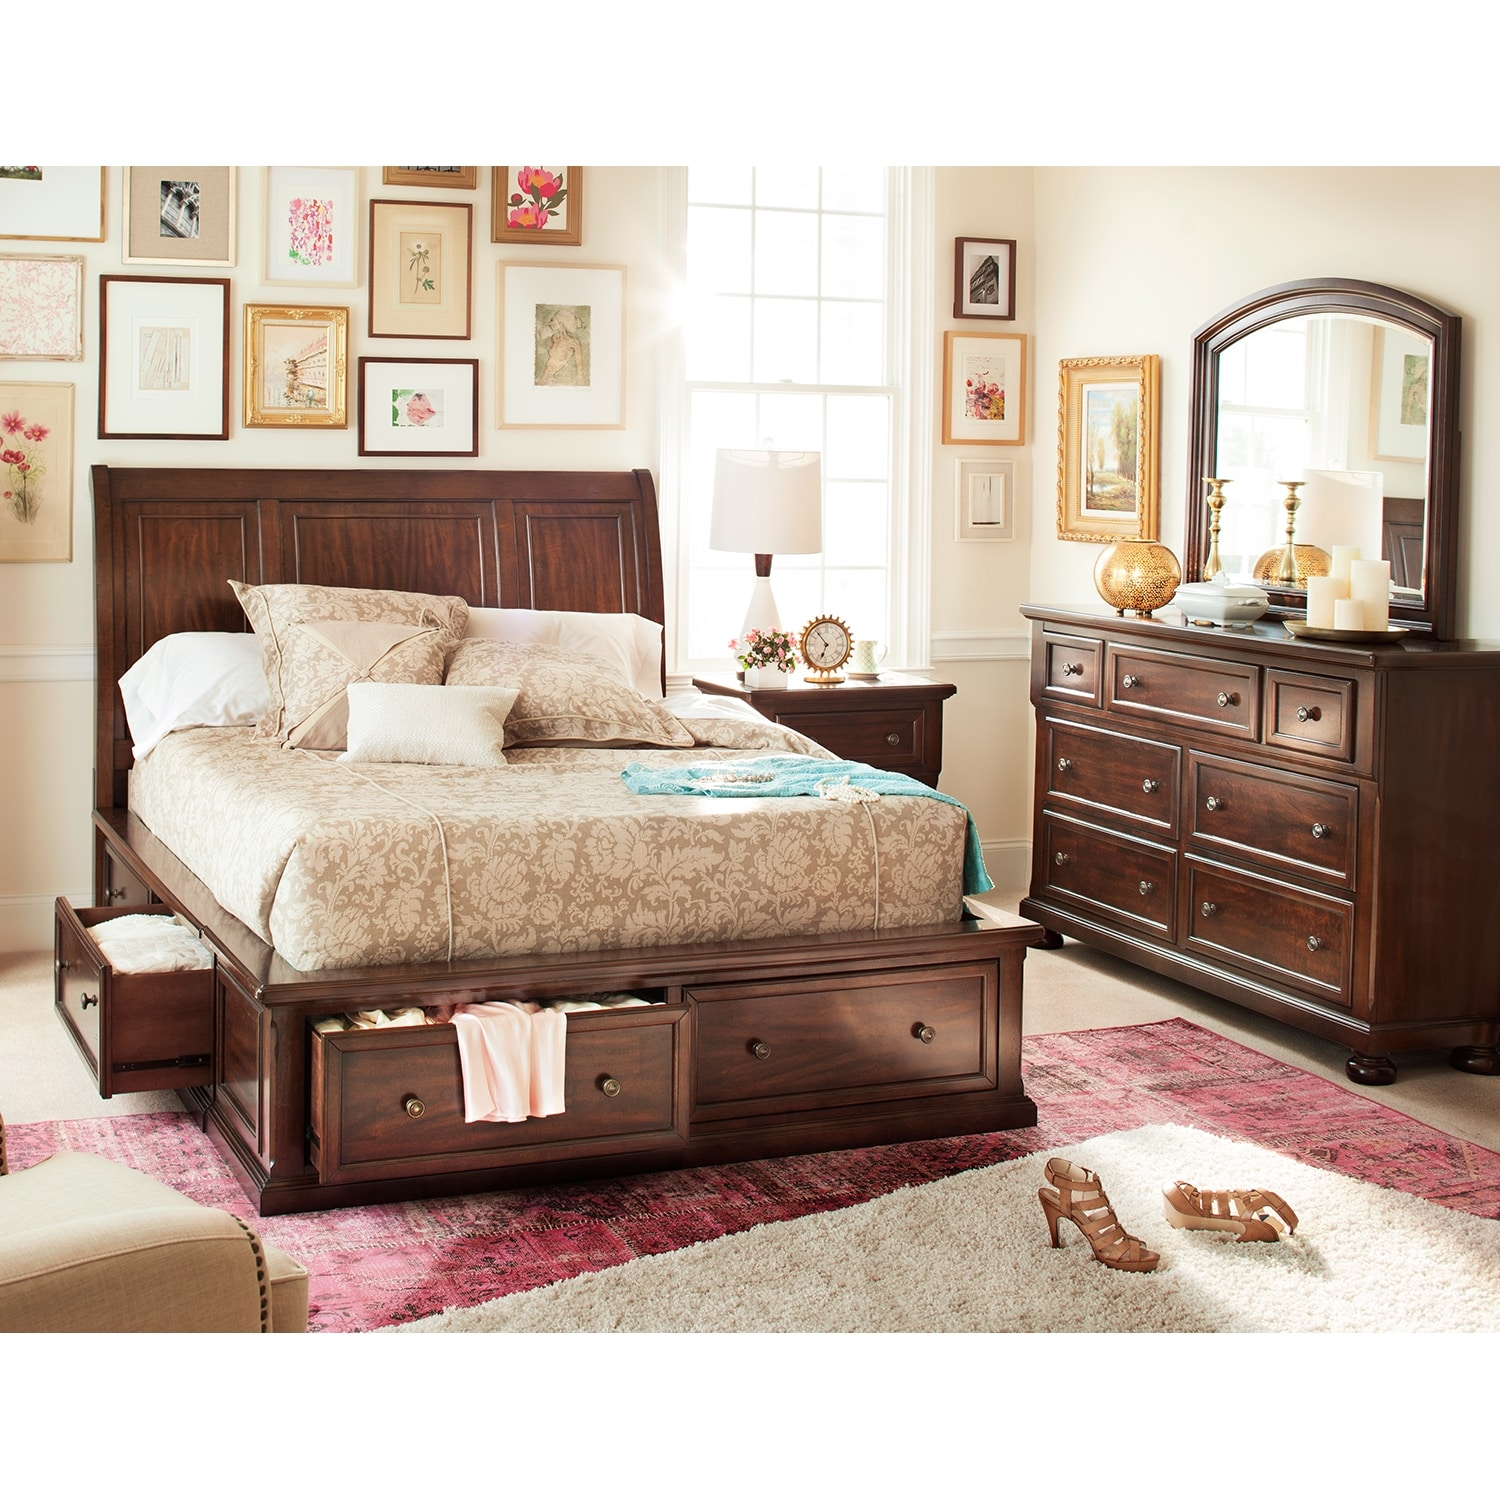 The Hanover Storage Bedroom Collection Cherry Value City